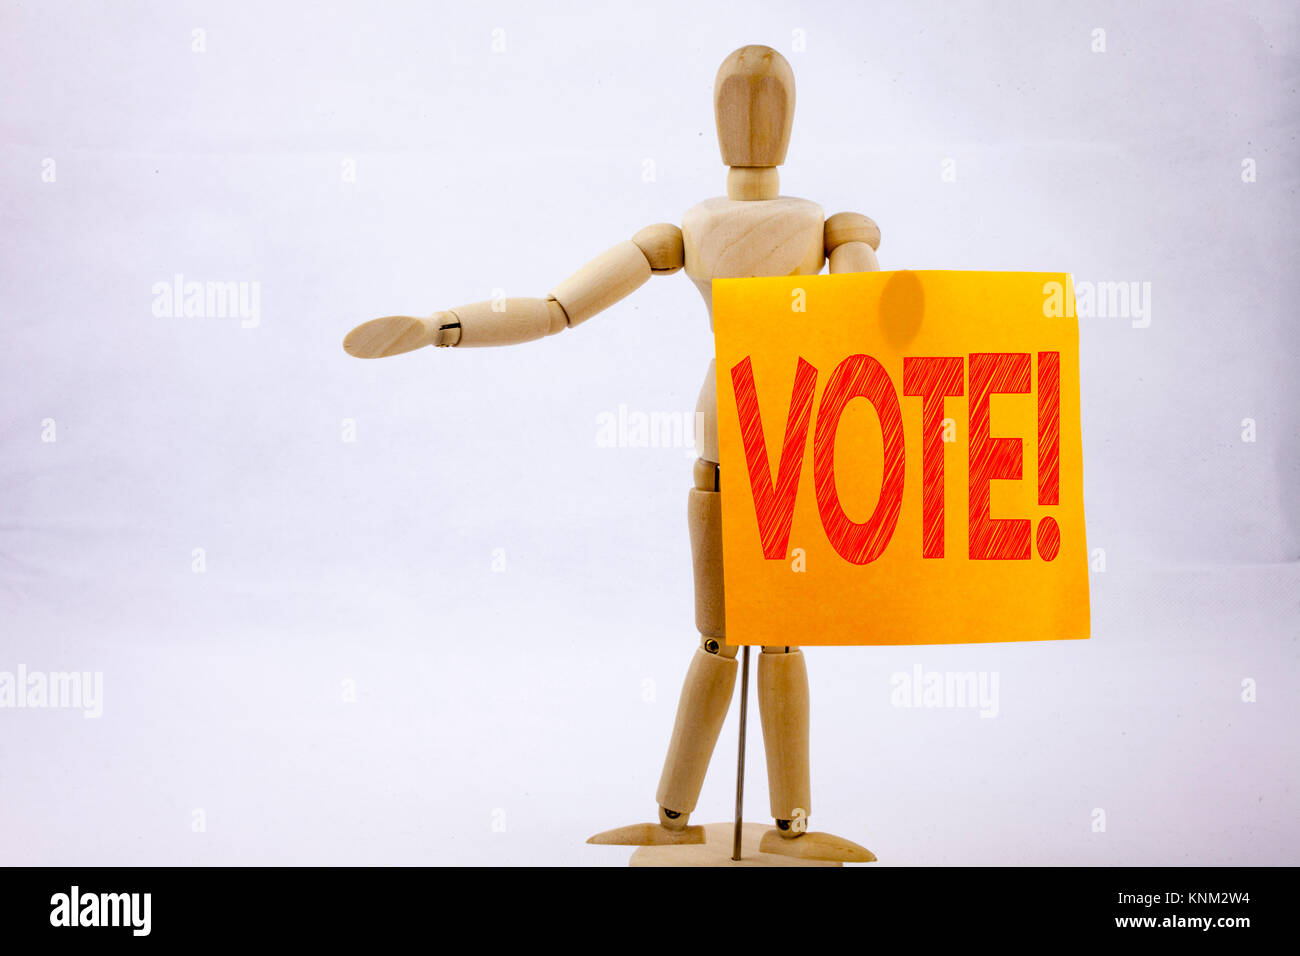 Conceptual hand writing text caption inspiration showing Vote Business concept for Voting Electoral Vote written Stock Photo